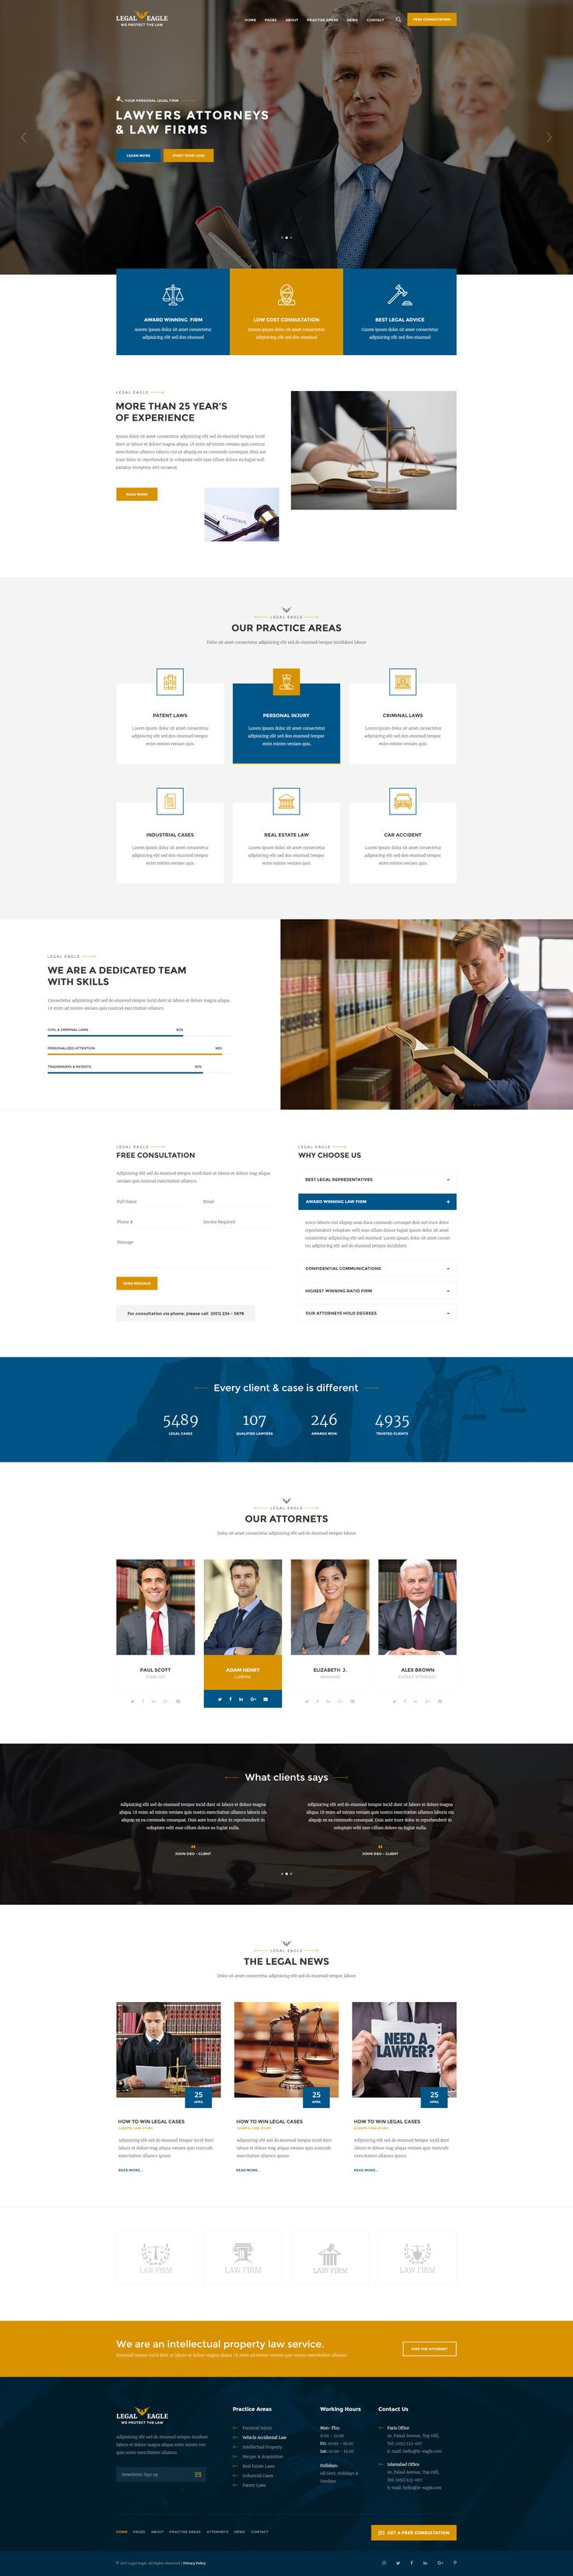 Legal Eagle a Law firm Business Agency WordPress Template Best Responsive Theme for Lawyers Attorneys website  https://themeforest.net/item/legal-eagle-law-firm-and-business-wordpress-theme/20218514?ref=microedges  #WP #WordPress #Law #Agency #Best #Top #Responsive #Web #WebDesign #CMS #Website #Design #Development #Creative #Awesome #BootStrap #MultiPurpose #Theme #Template #Blog #Site #Inspirational #Business #FontAwesome #HighQuality #Premium #Professional #Themeforest #HighResolution